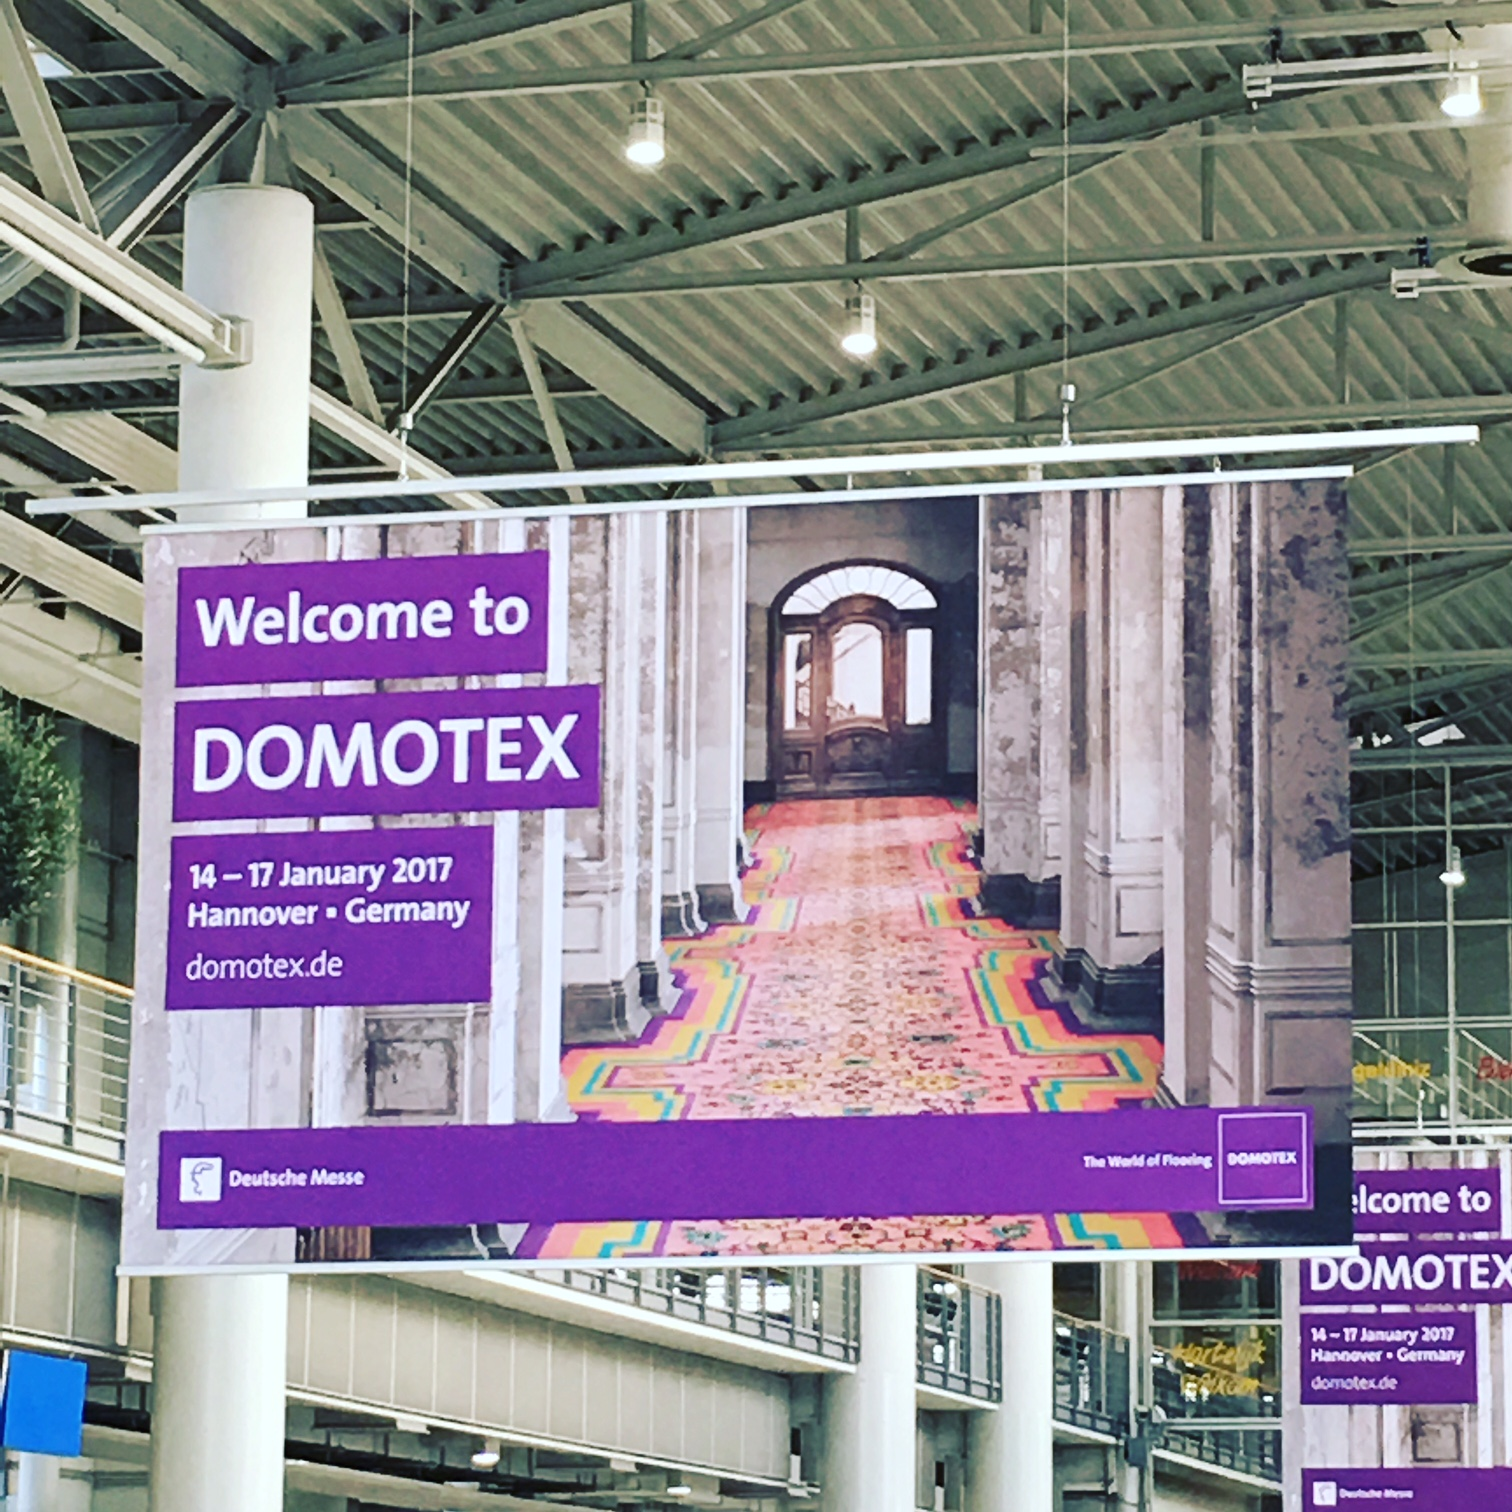 Domotex 2017 / Hannover - Germany